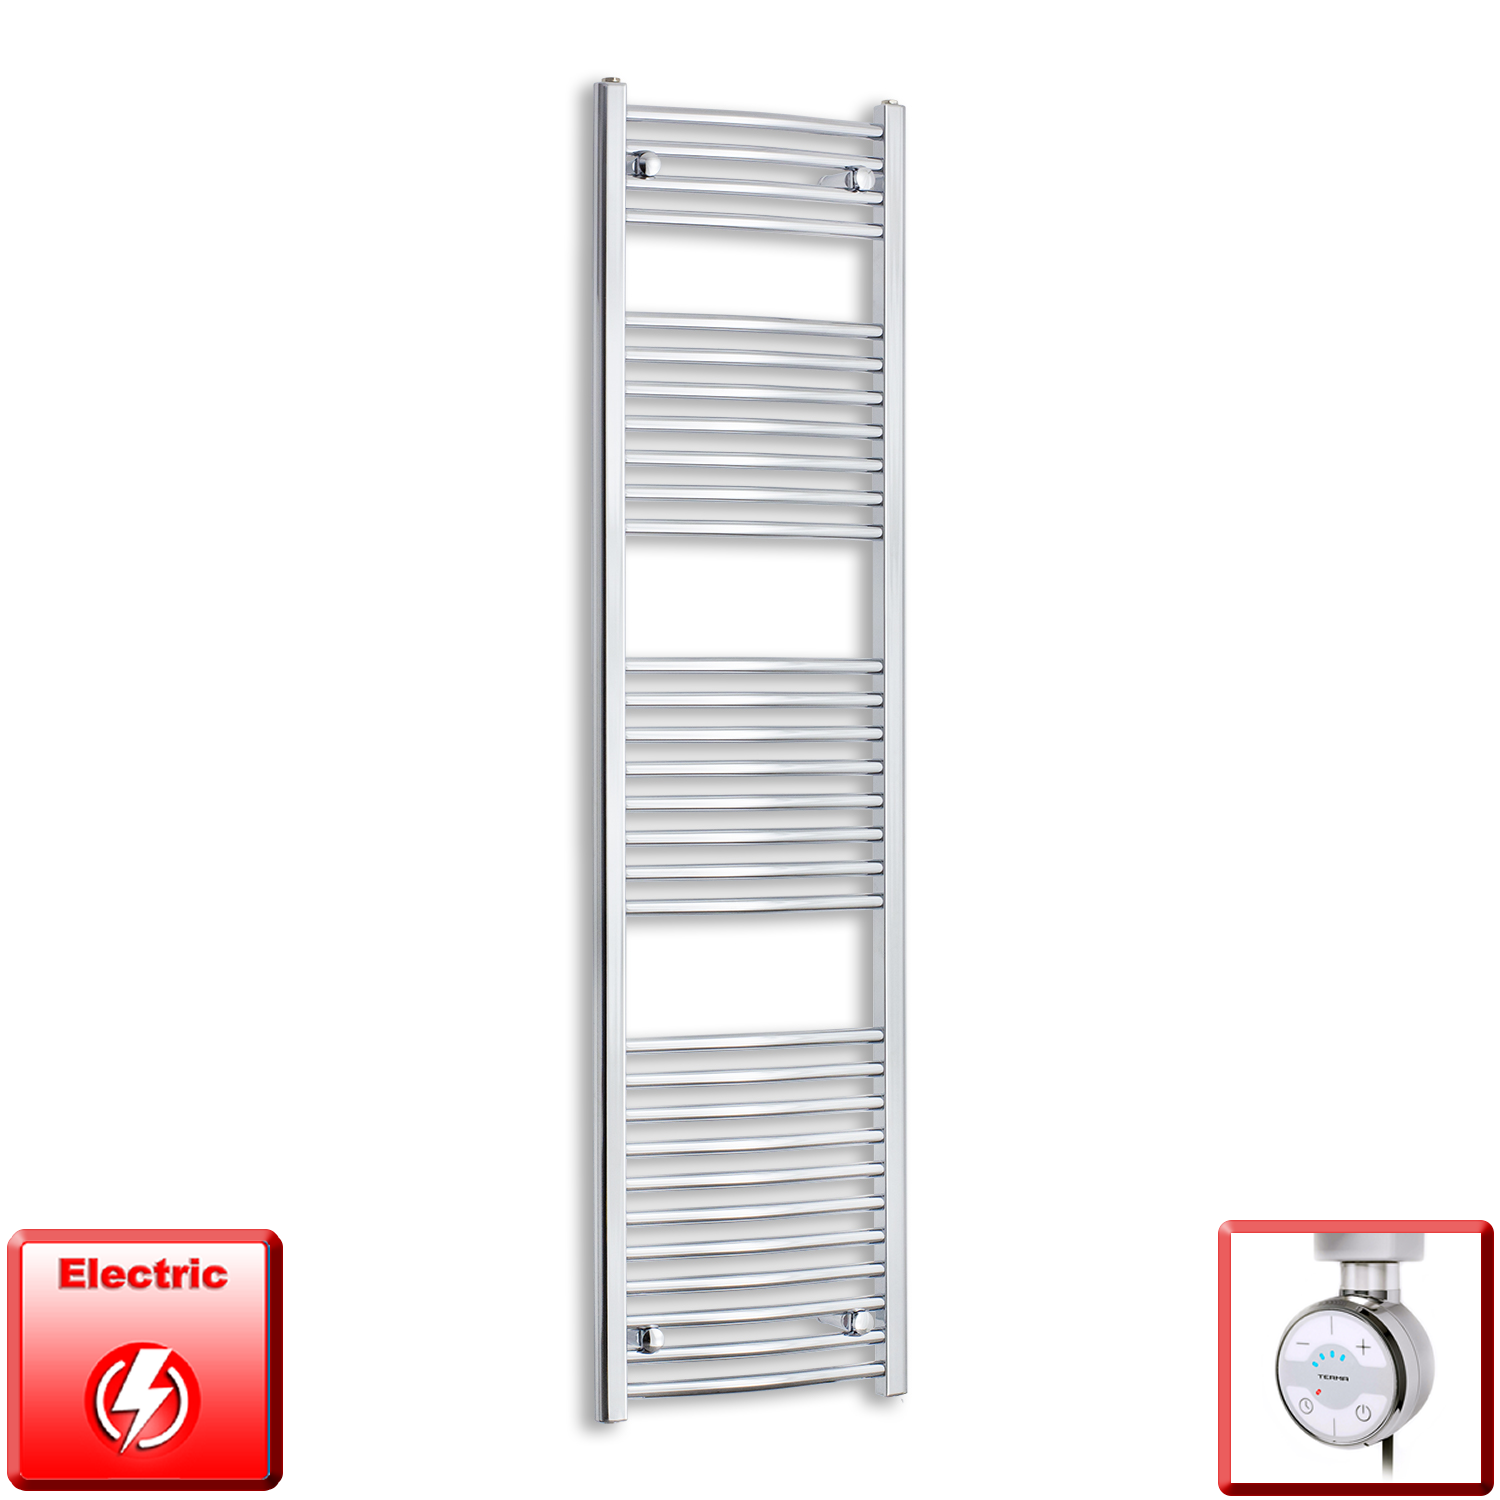 450mm Wide 1700mm High Flat Or Curved Chrome Pre-Filled Electric Heated Towel Rail Radiator HTR,MOA Thermostatic Element / Straight